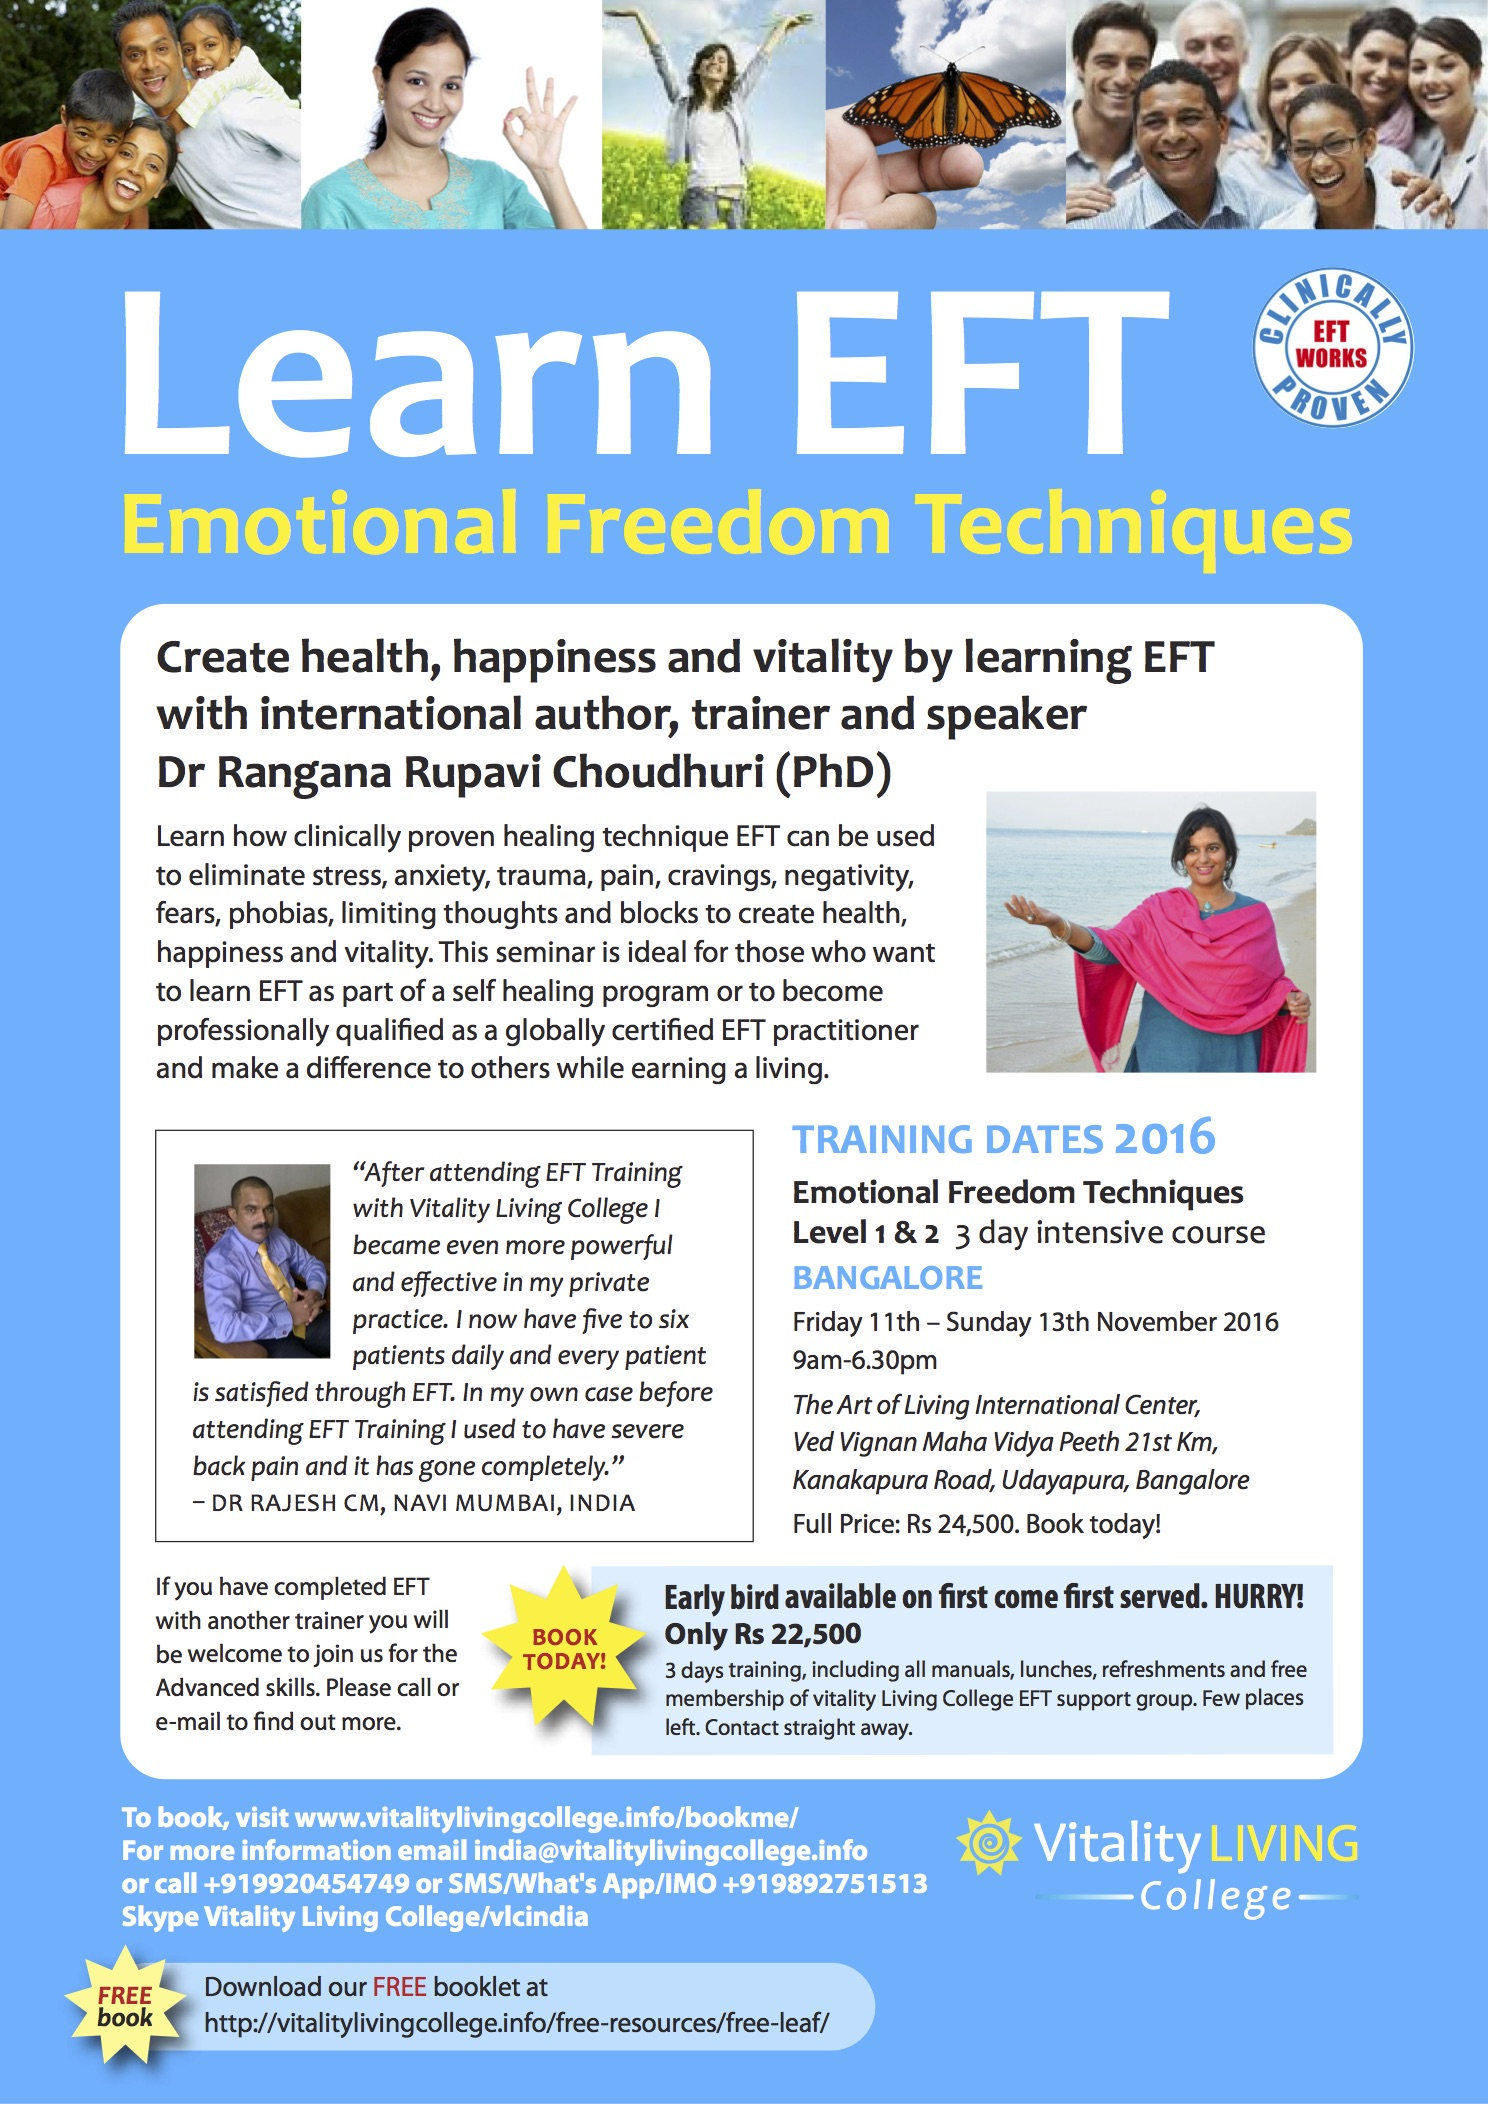 Emotional Freedom Techniques (EFT) Bangalore November 2016 with Dr Rangana Rupavi Choudhuri